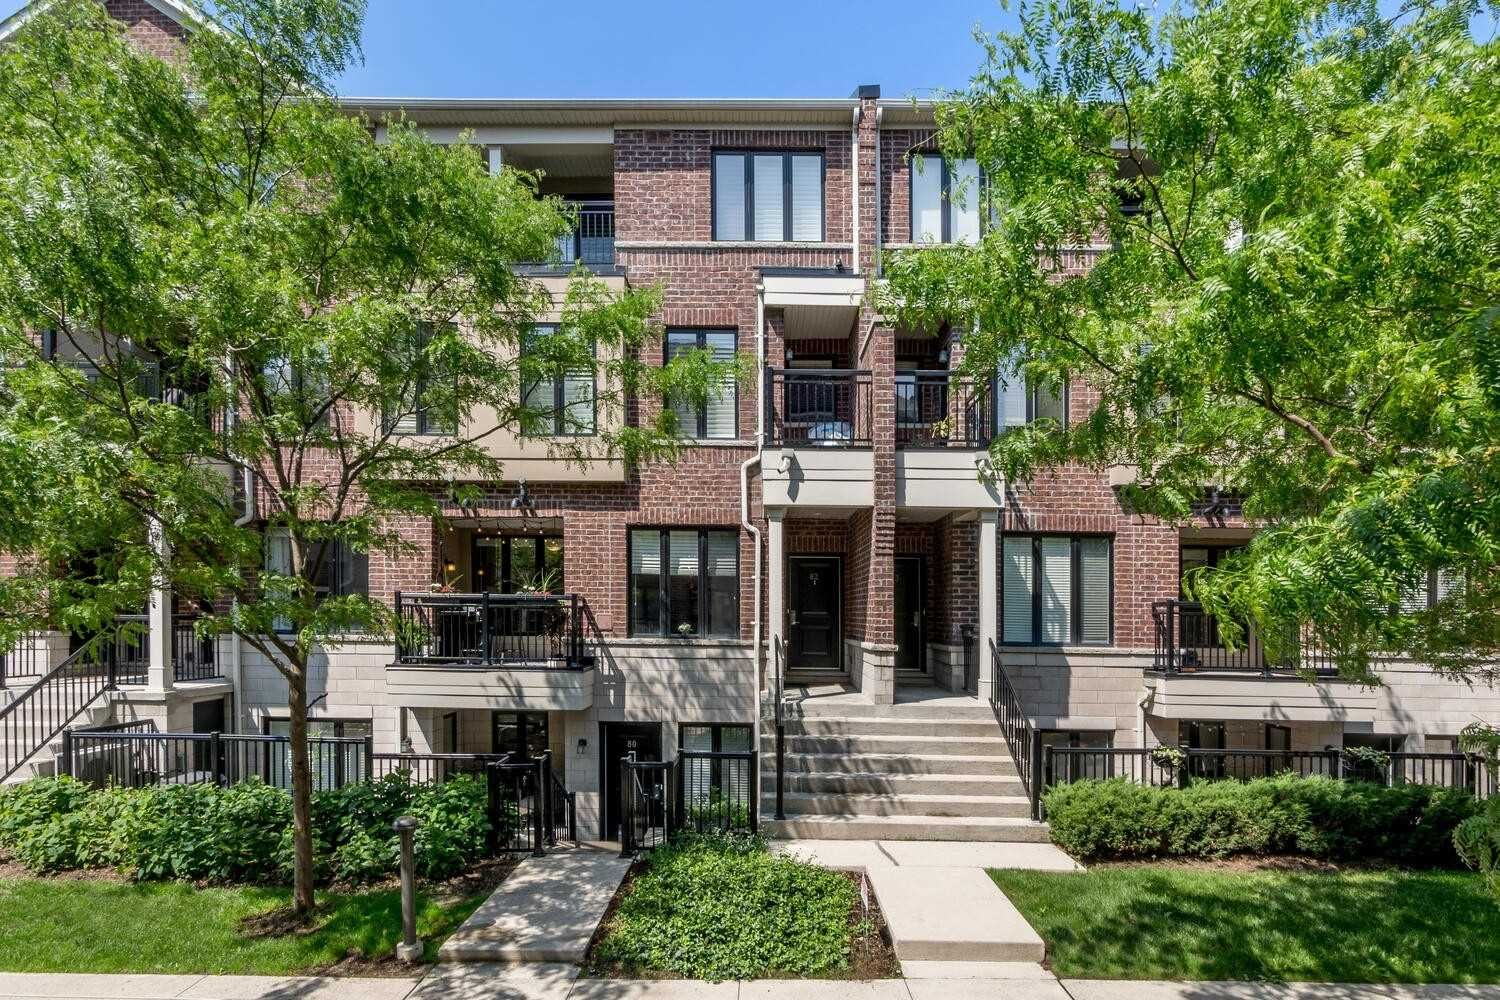 30 Carnation Ave, unit Th 81 for sale in Toronto - image #1